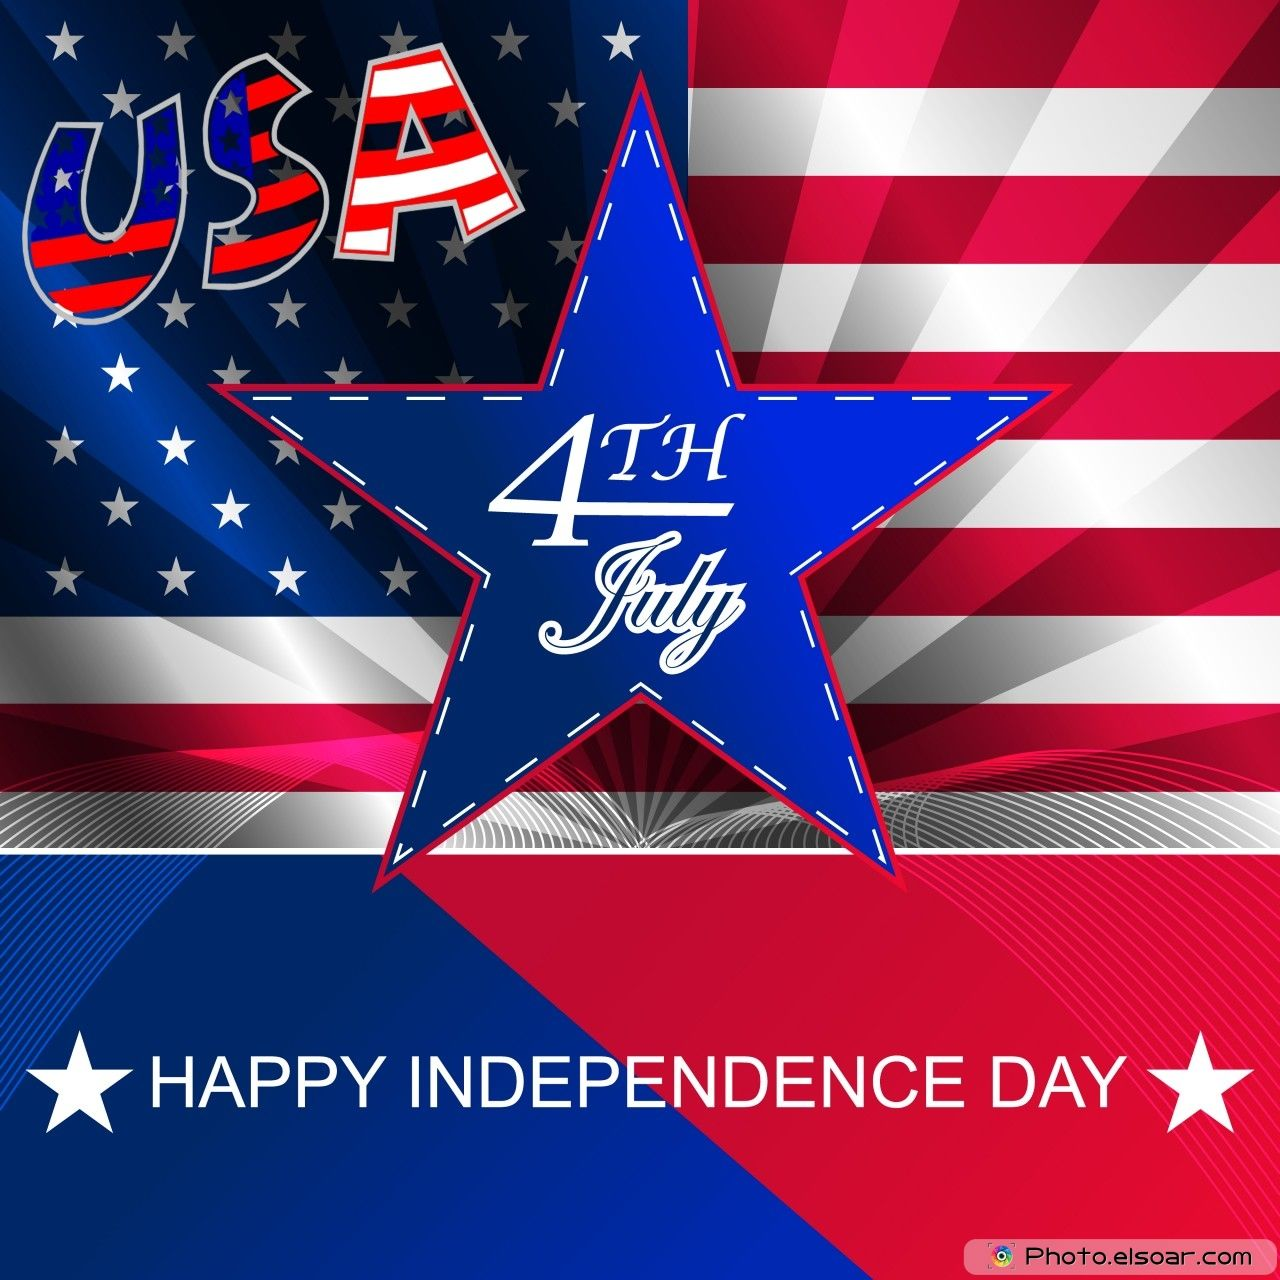 http://www.lovethispic.com/uploaded_images/269718-Usa-4th-July-Happy-Independence-Day.jpg